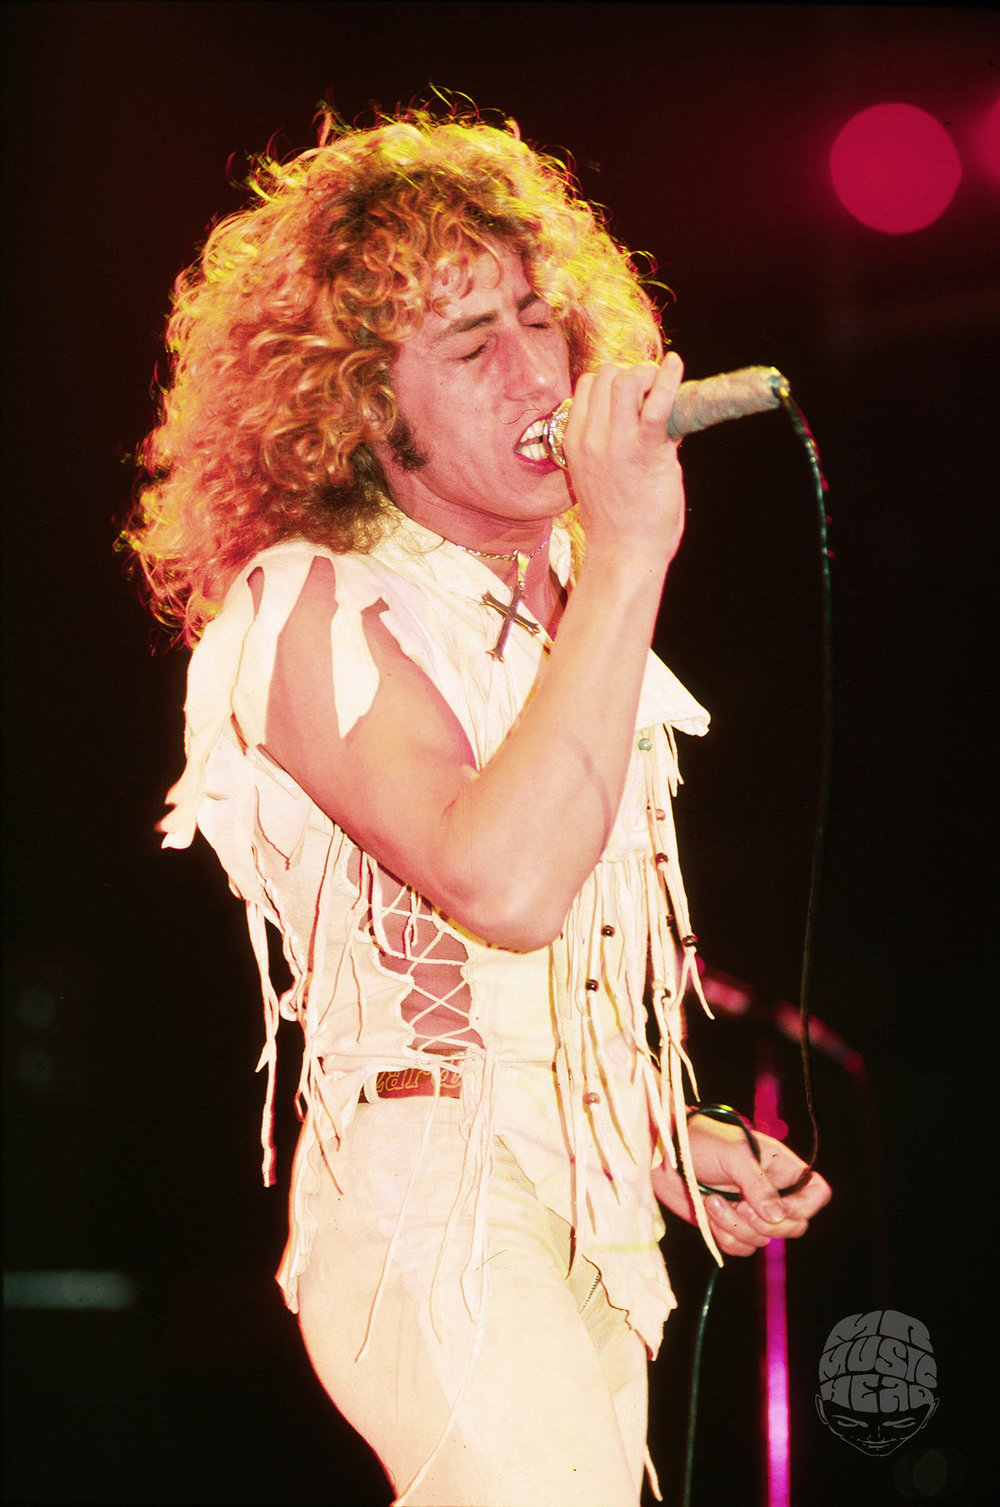 james fortune_roger daltrey_the who.jpg